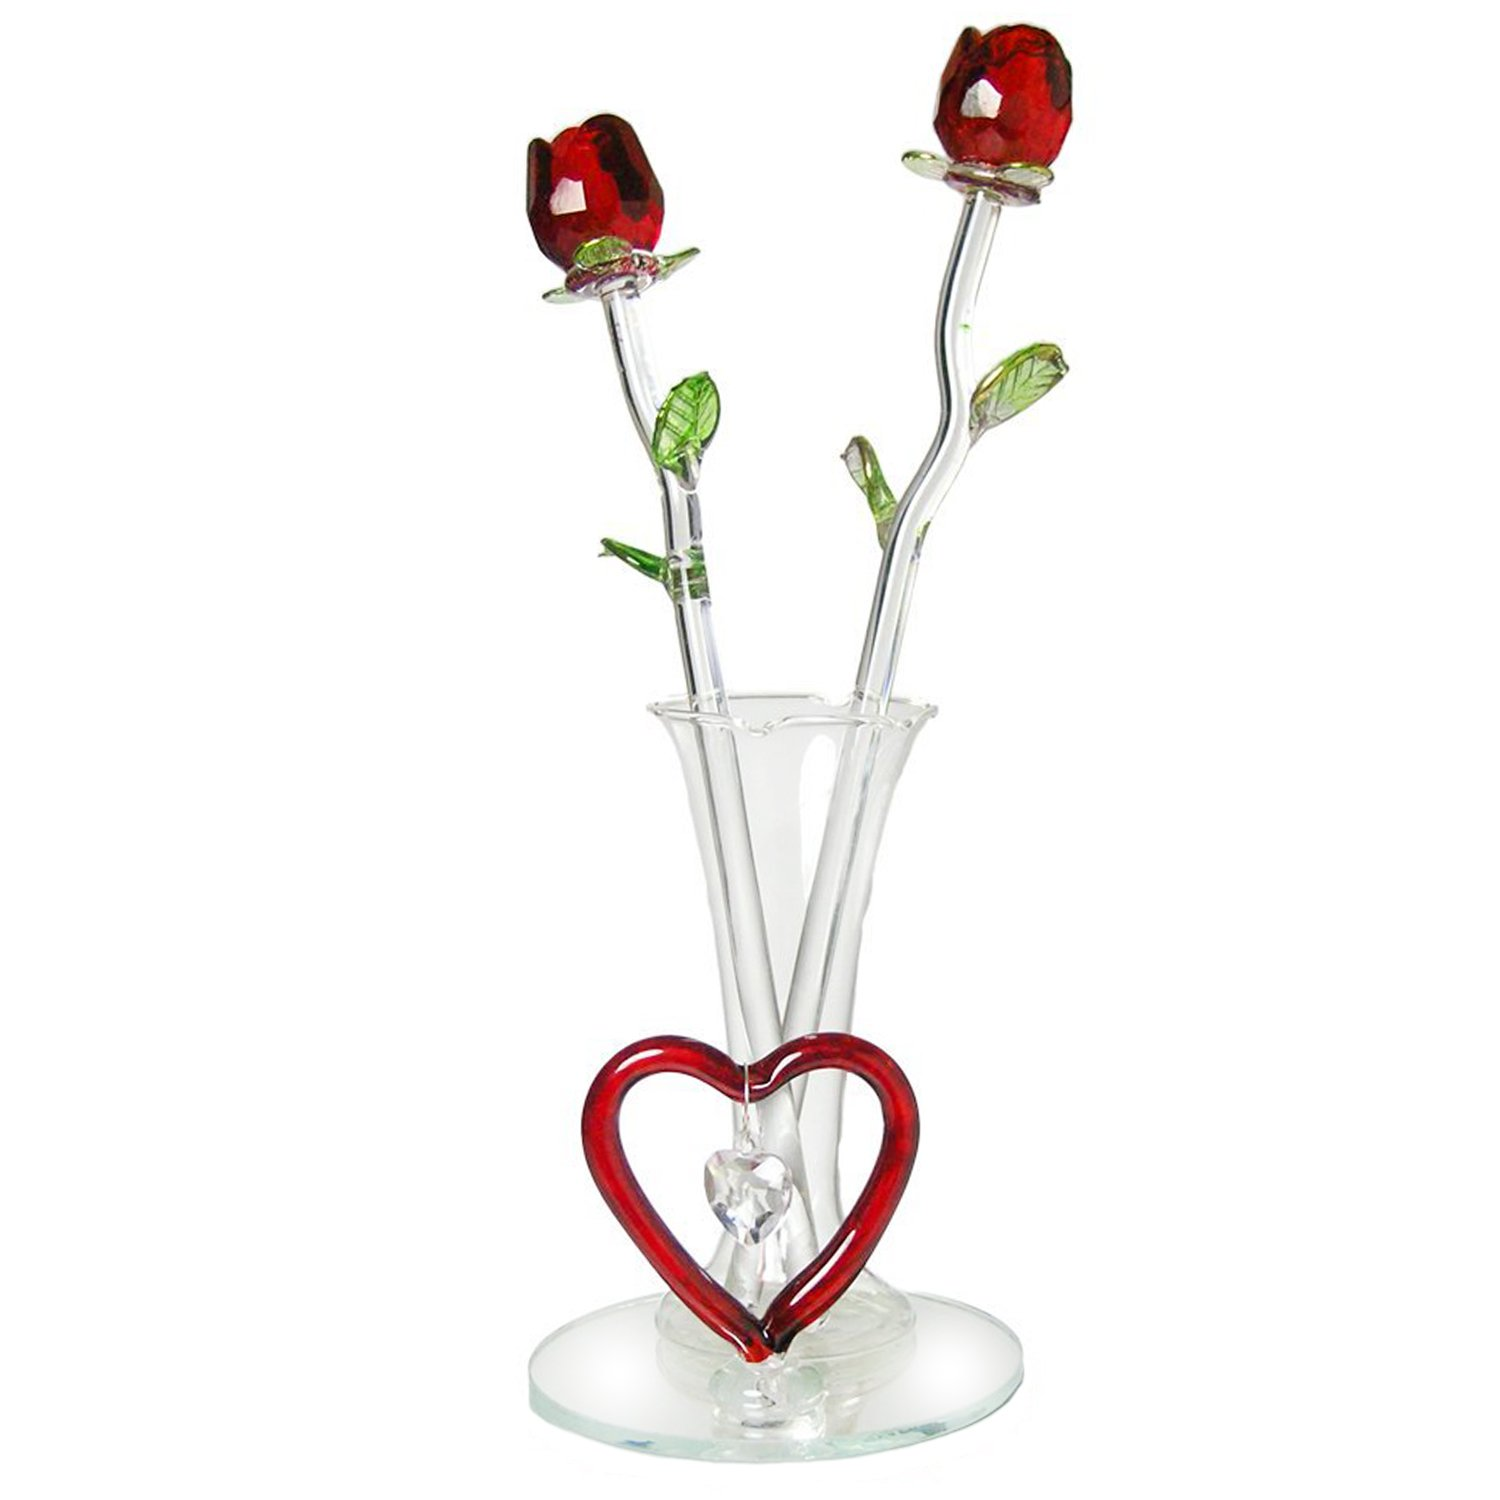 Amazon forever glass rose flowers for valentines day amazon forever glass rose flowers for valentines day decorations gifts in glass vase with red heart and hanging crystal heart shaped charm on mirrored reviewsmspy